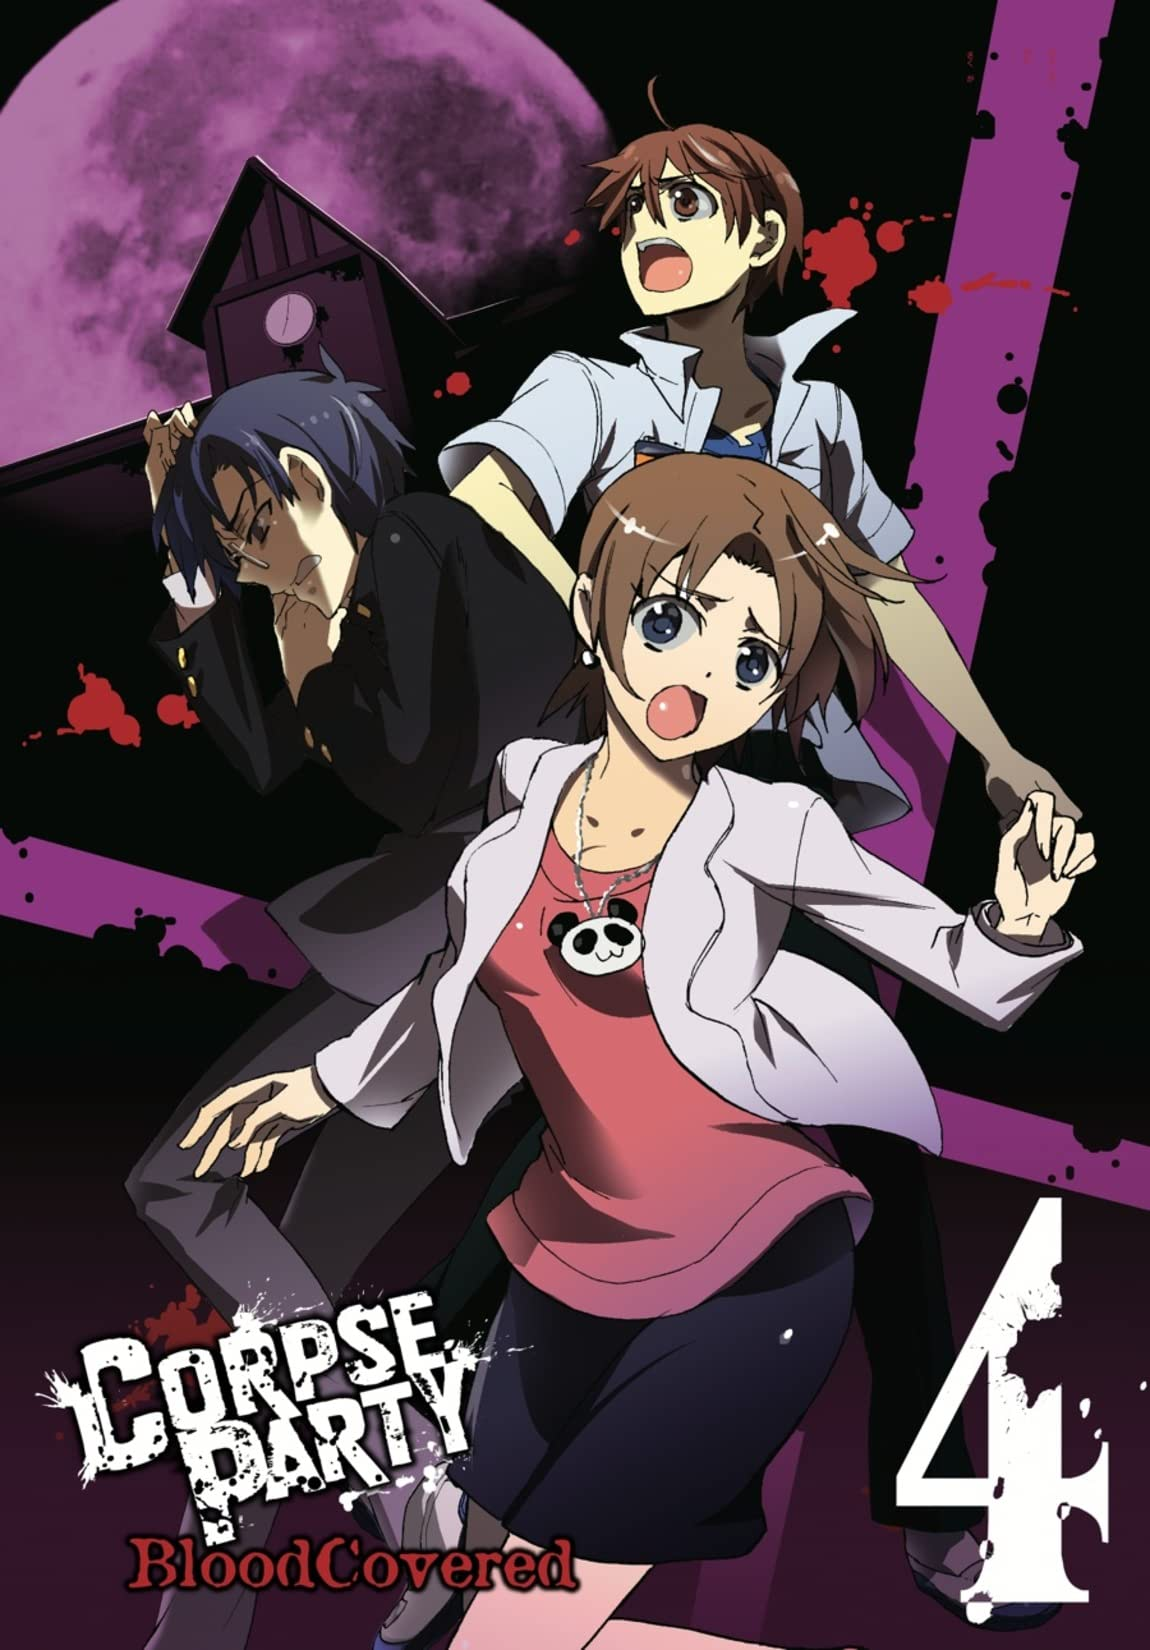 Corpse Party Blood Covered Vol 4 Comics By Comixology